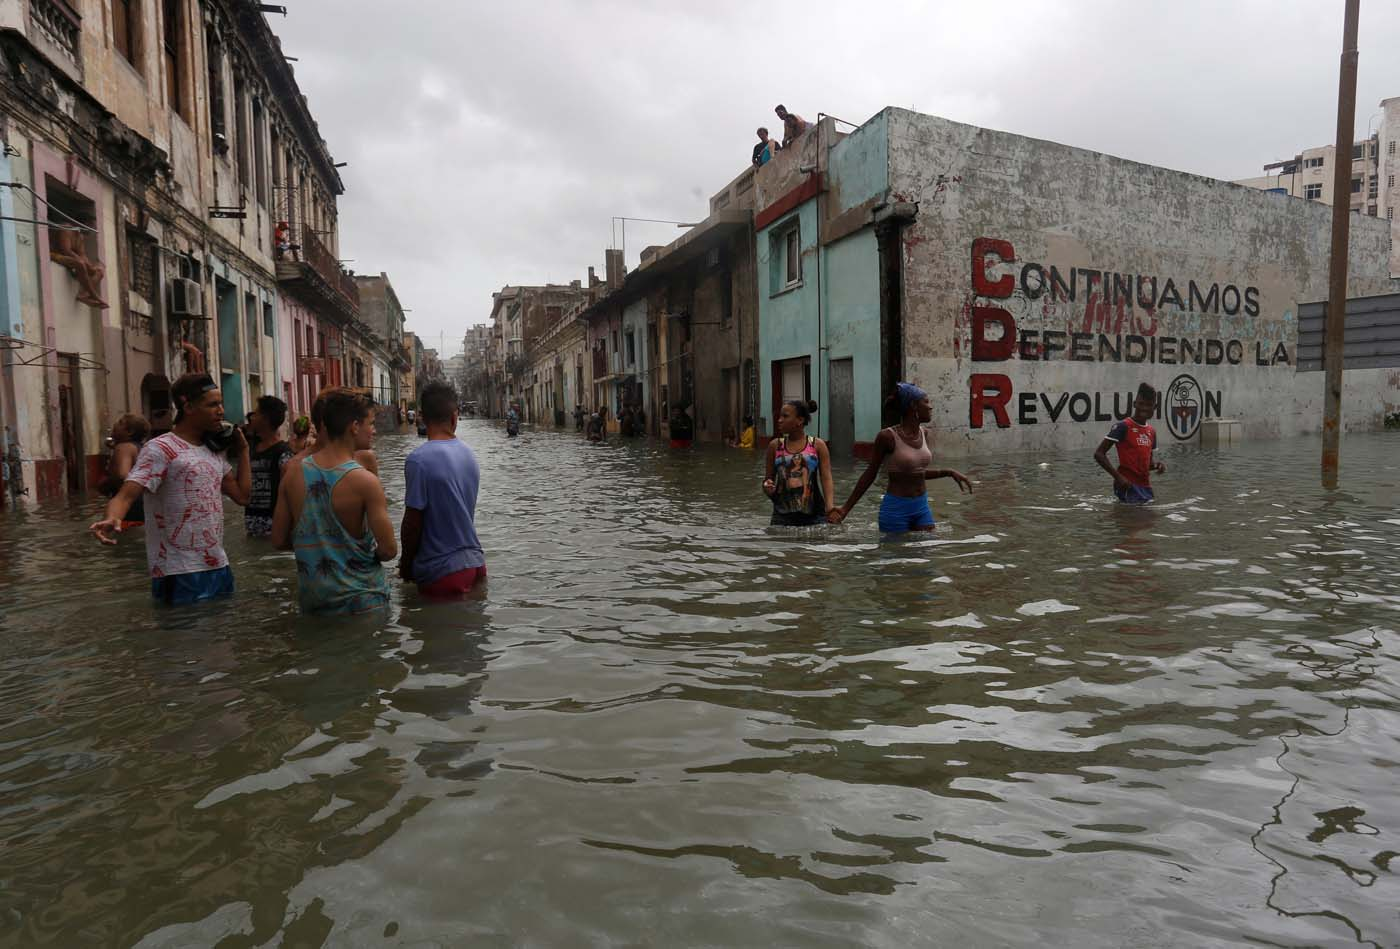 """People wade through a flooded street, after the passing of Hurricane Irma, in Havana, Cuba September 10, 2017. The sign on the wall reads """"We will continue to defend the revolution."""" REUTERS/Stringer NO SALES. NO ARCHIVES"""